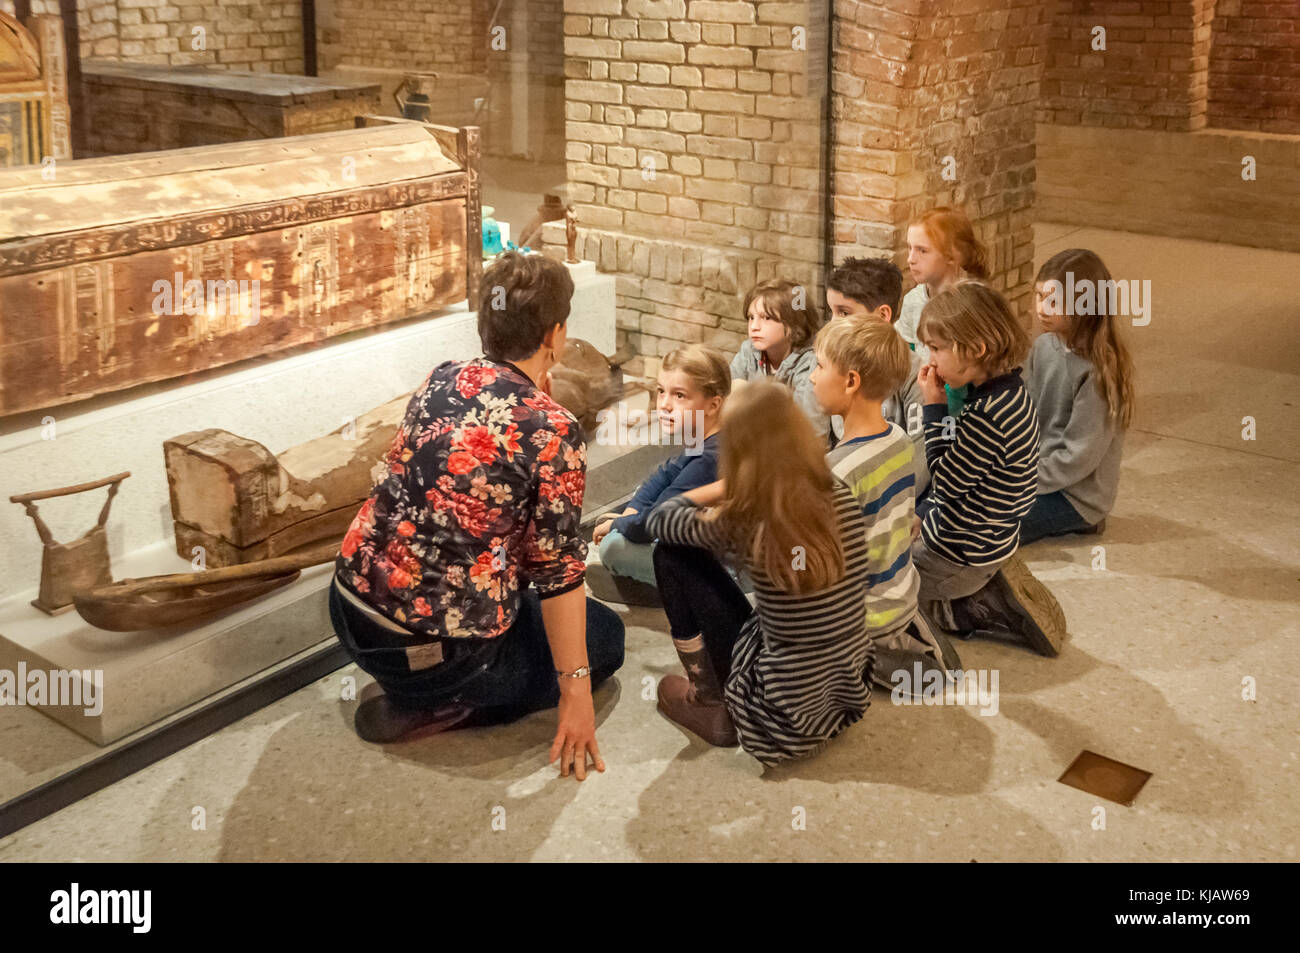 Educating kids at Neues Museum - Stock Image